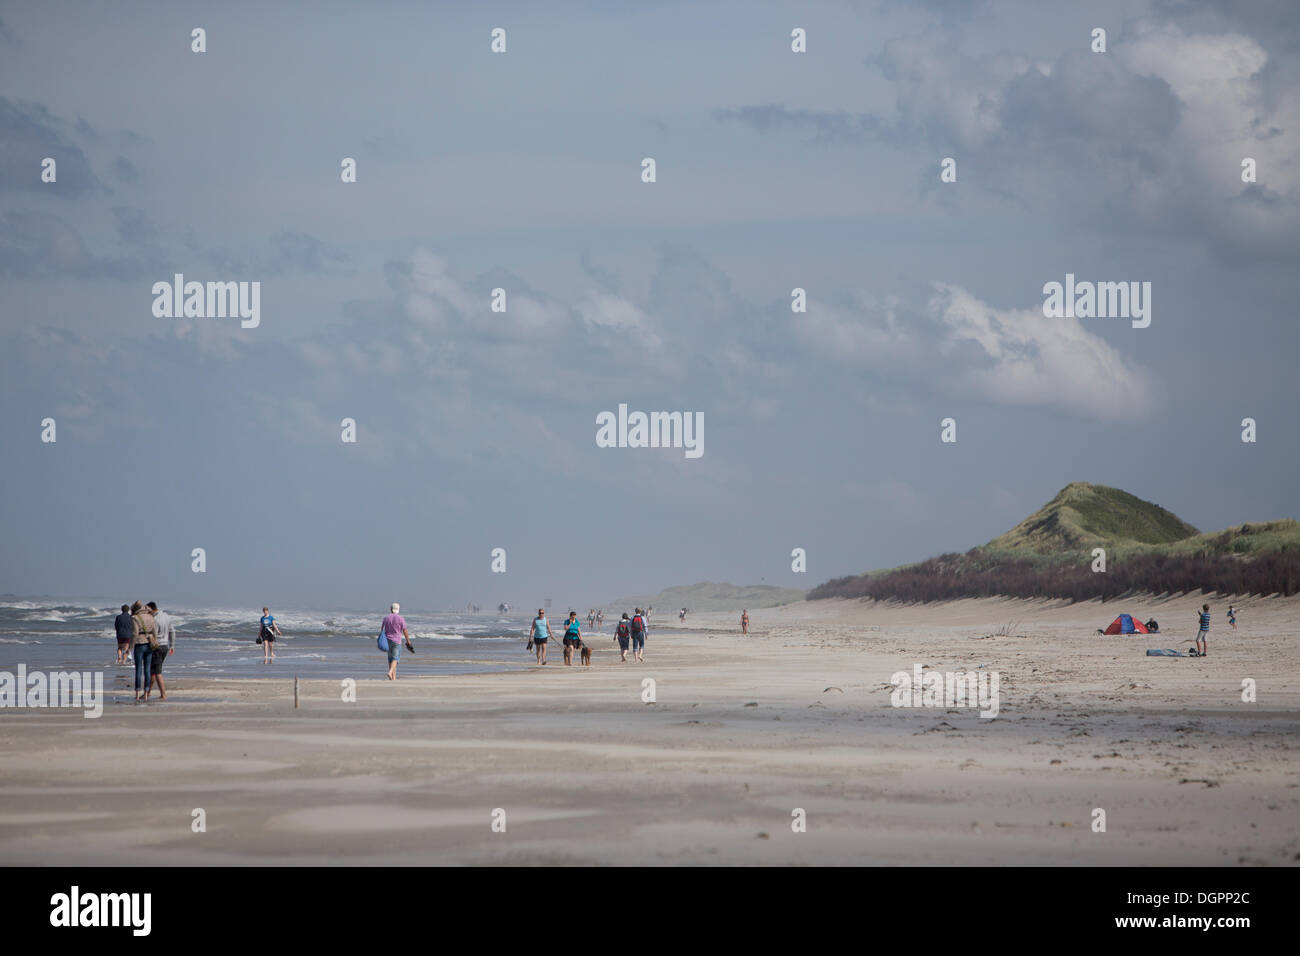 Eastern section of a beach for dogs, Langeoog Island, Lower Saxony Stock Photo